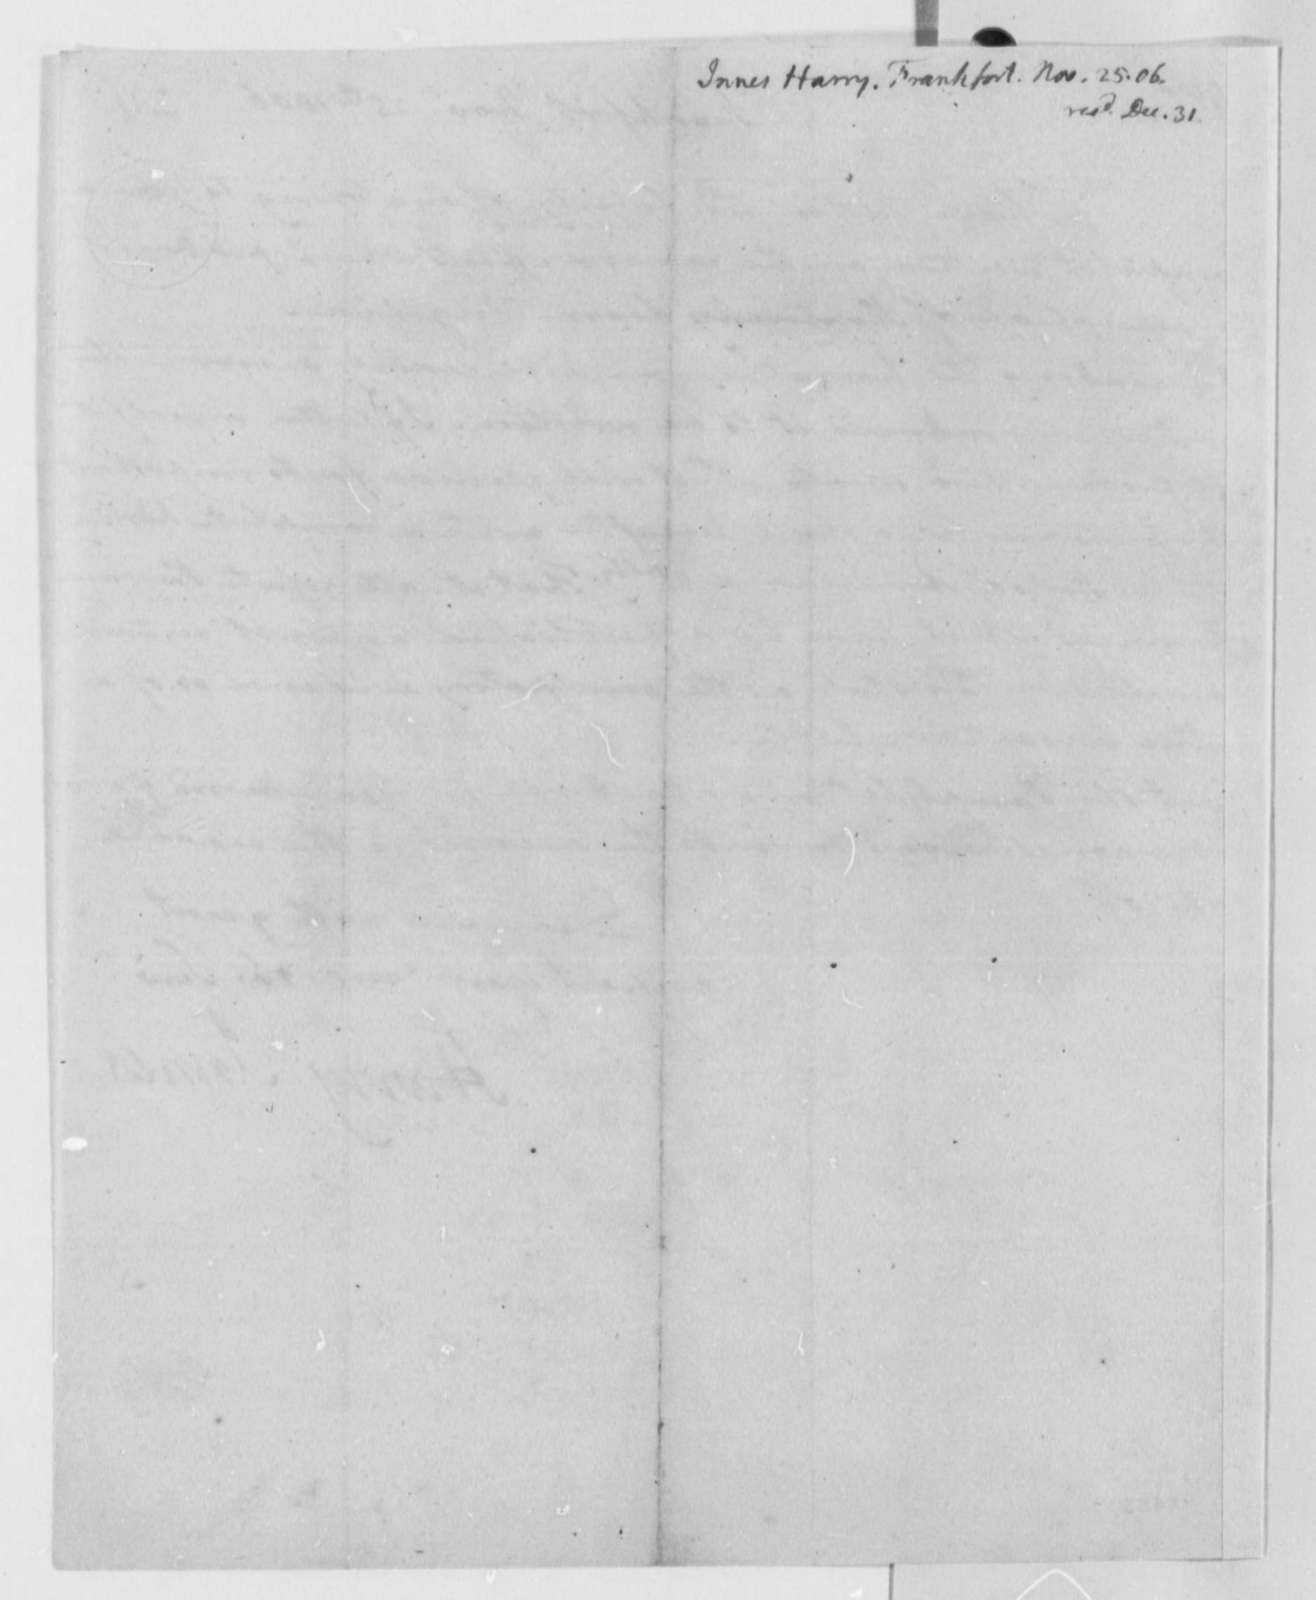 Harry Innes to Thomas Jefferson, November 25, 1806